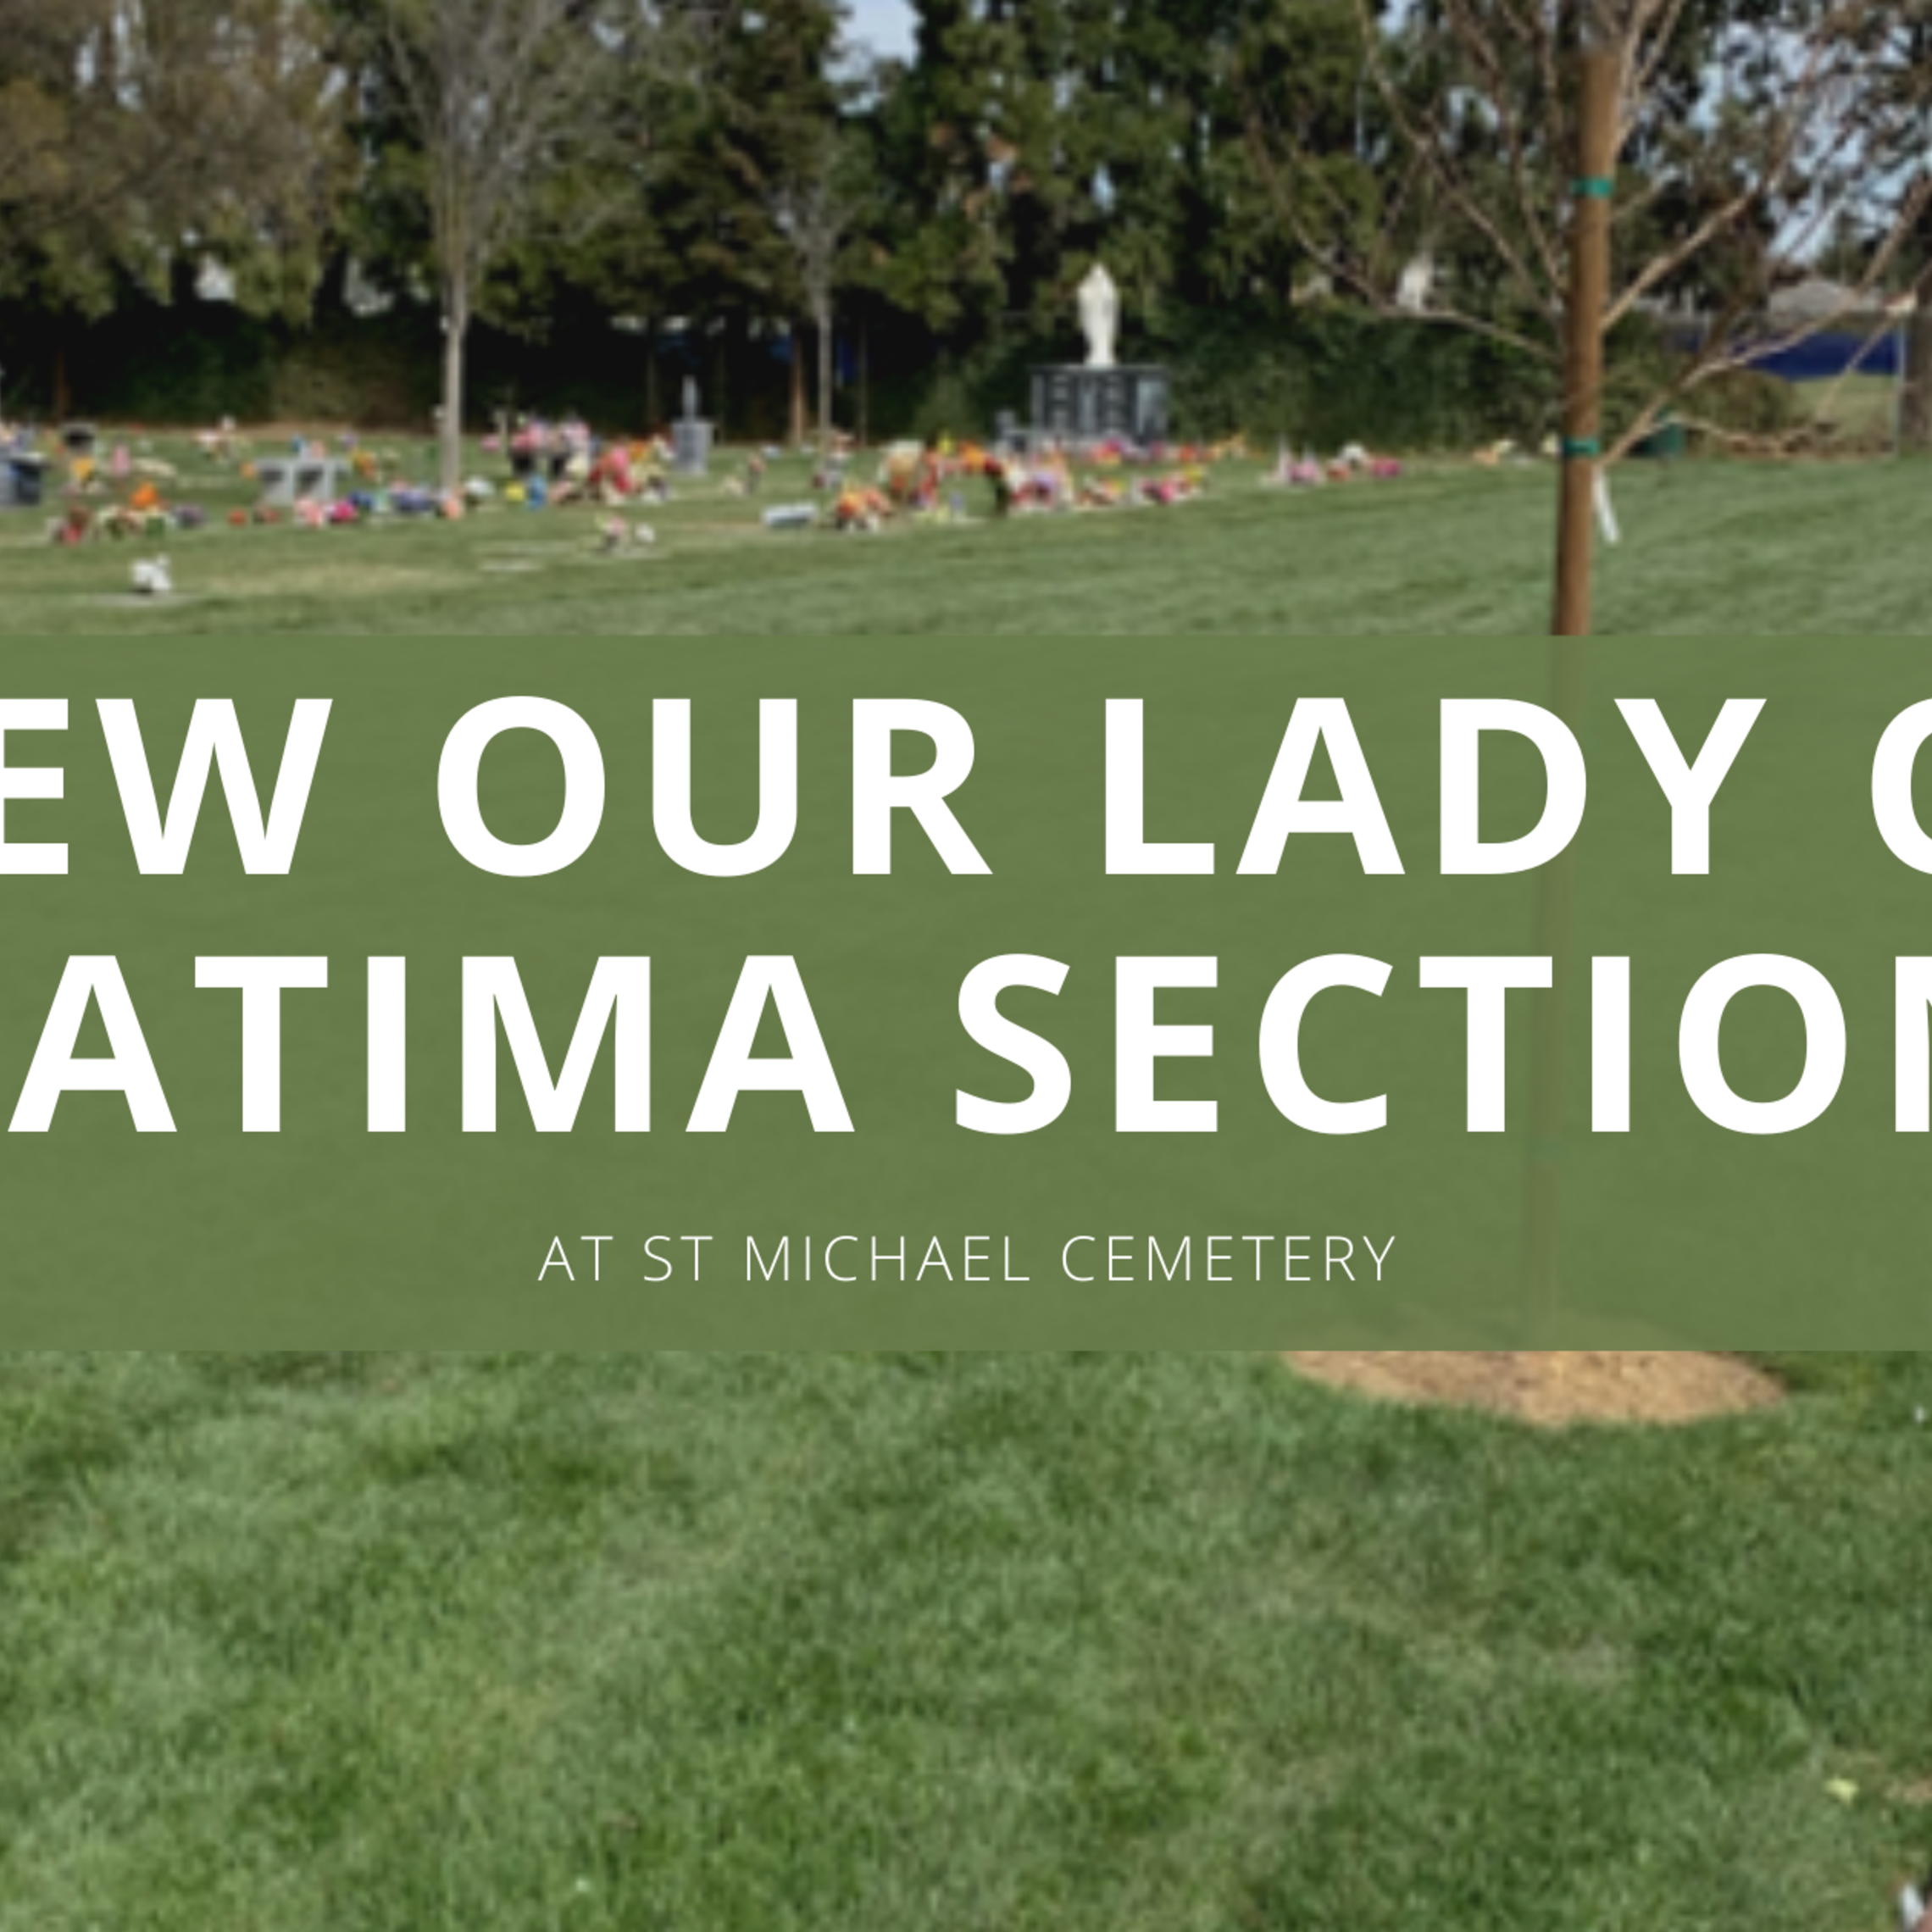 New Our Lady Of Fatima Section